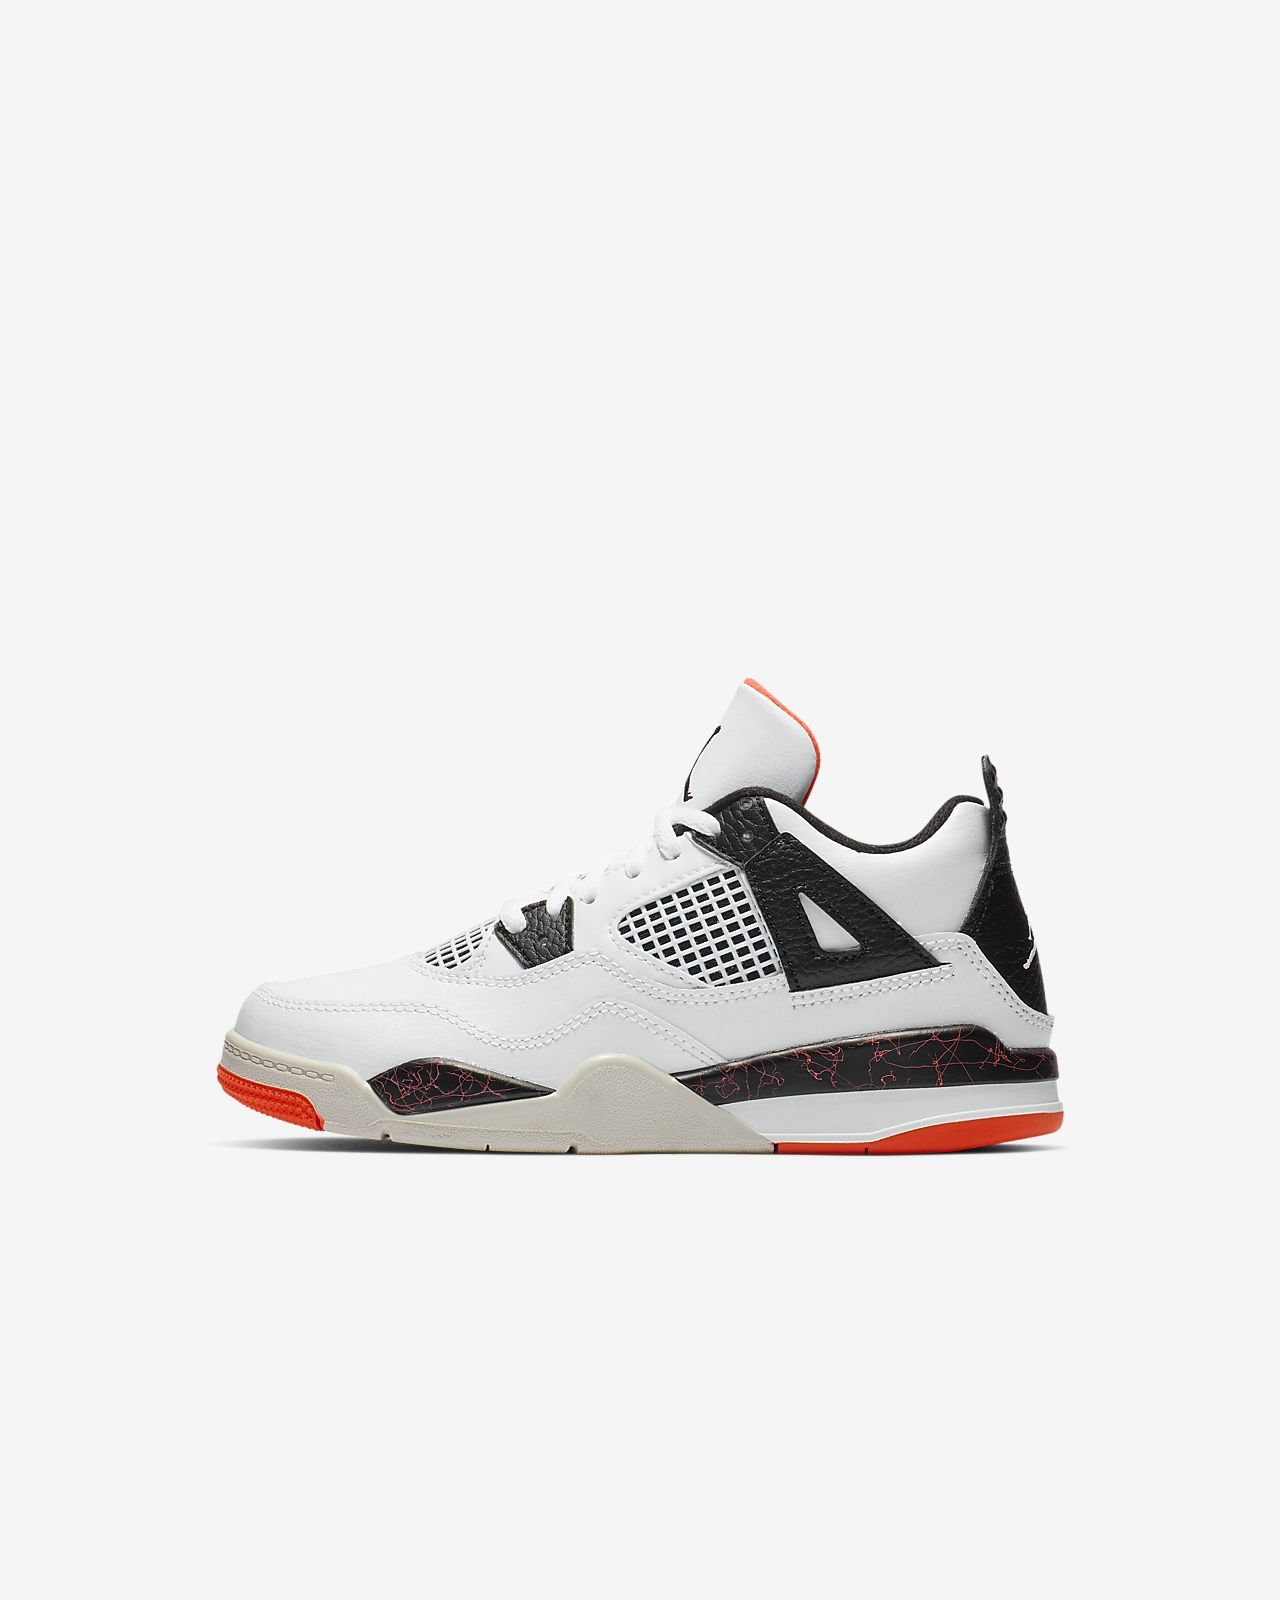 separation shoes 7722a 1bad7 ... Jordan 4 Retro Little Kids  Shoe